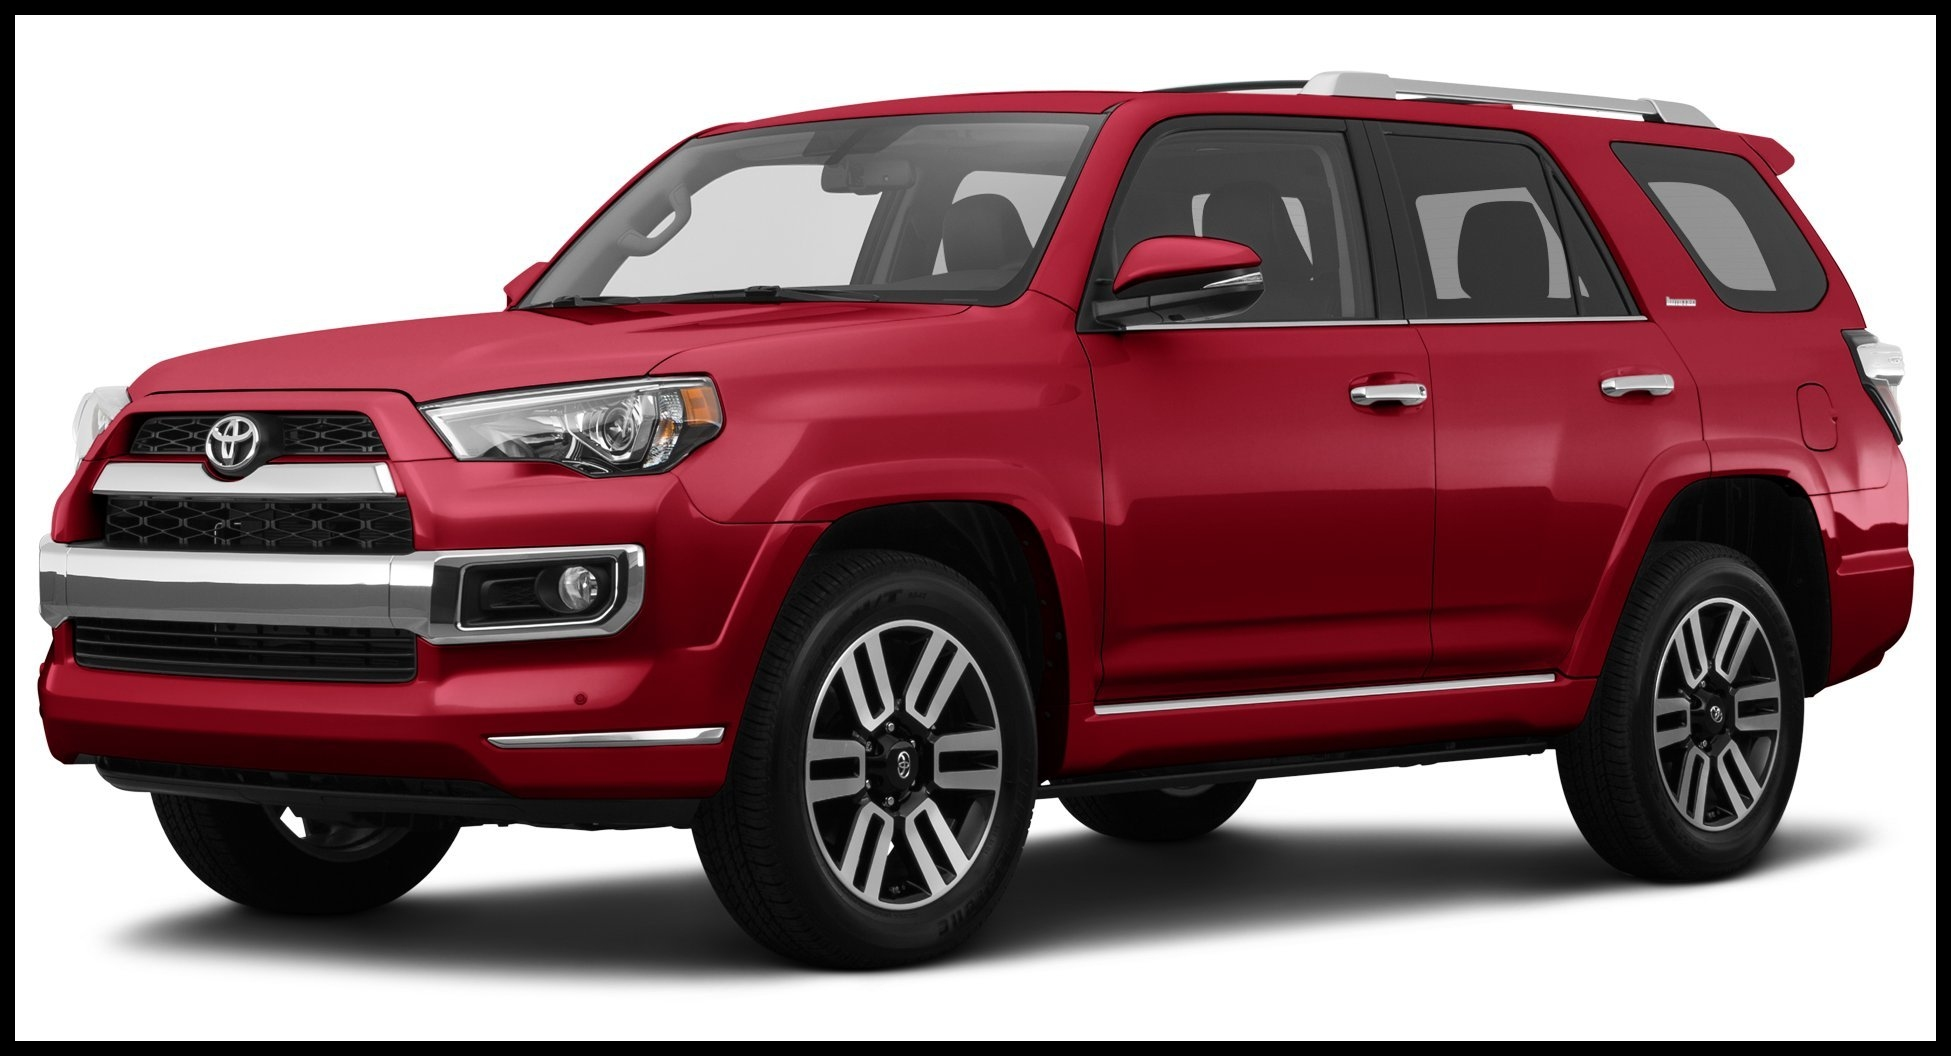 2016 Toyota 4Runner Limited 4 Wheel Drive 4 Door V6 GS